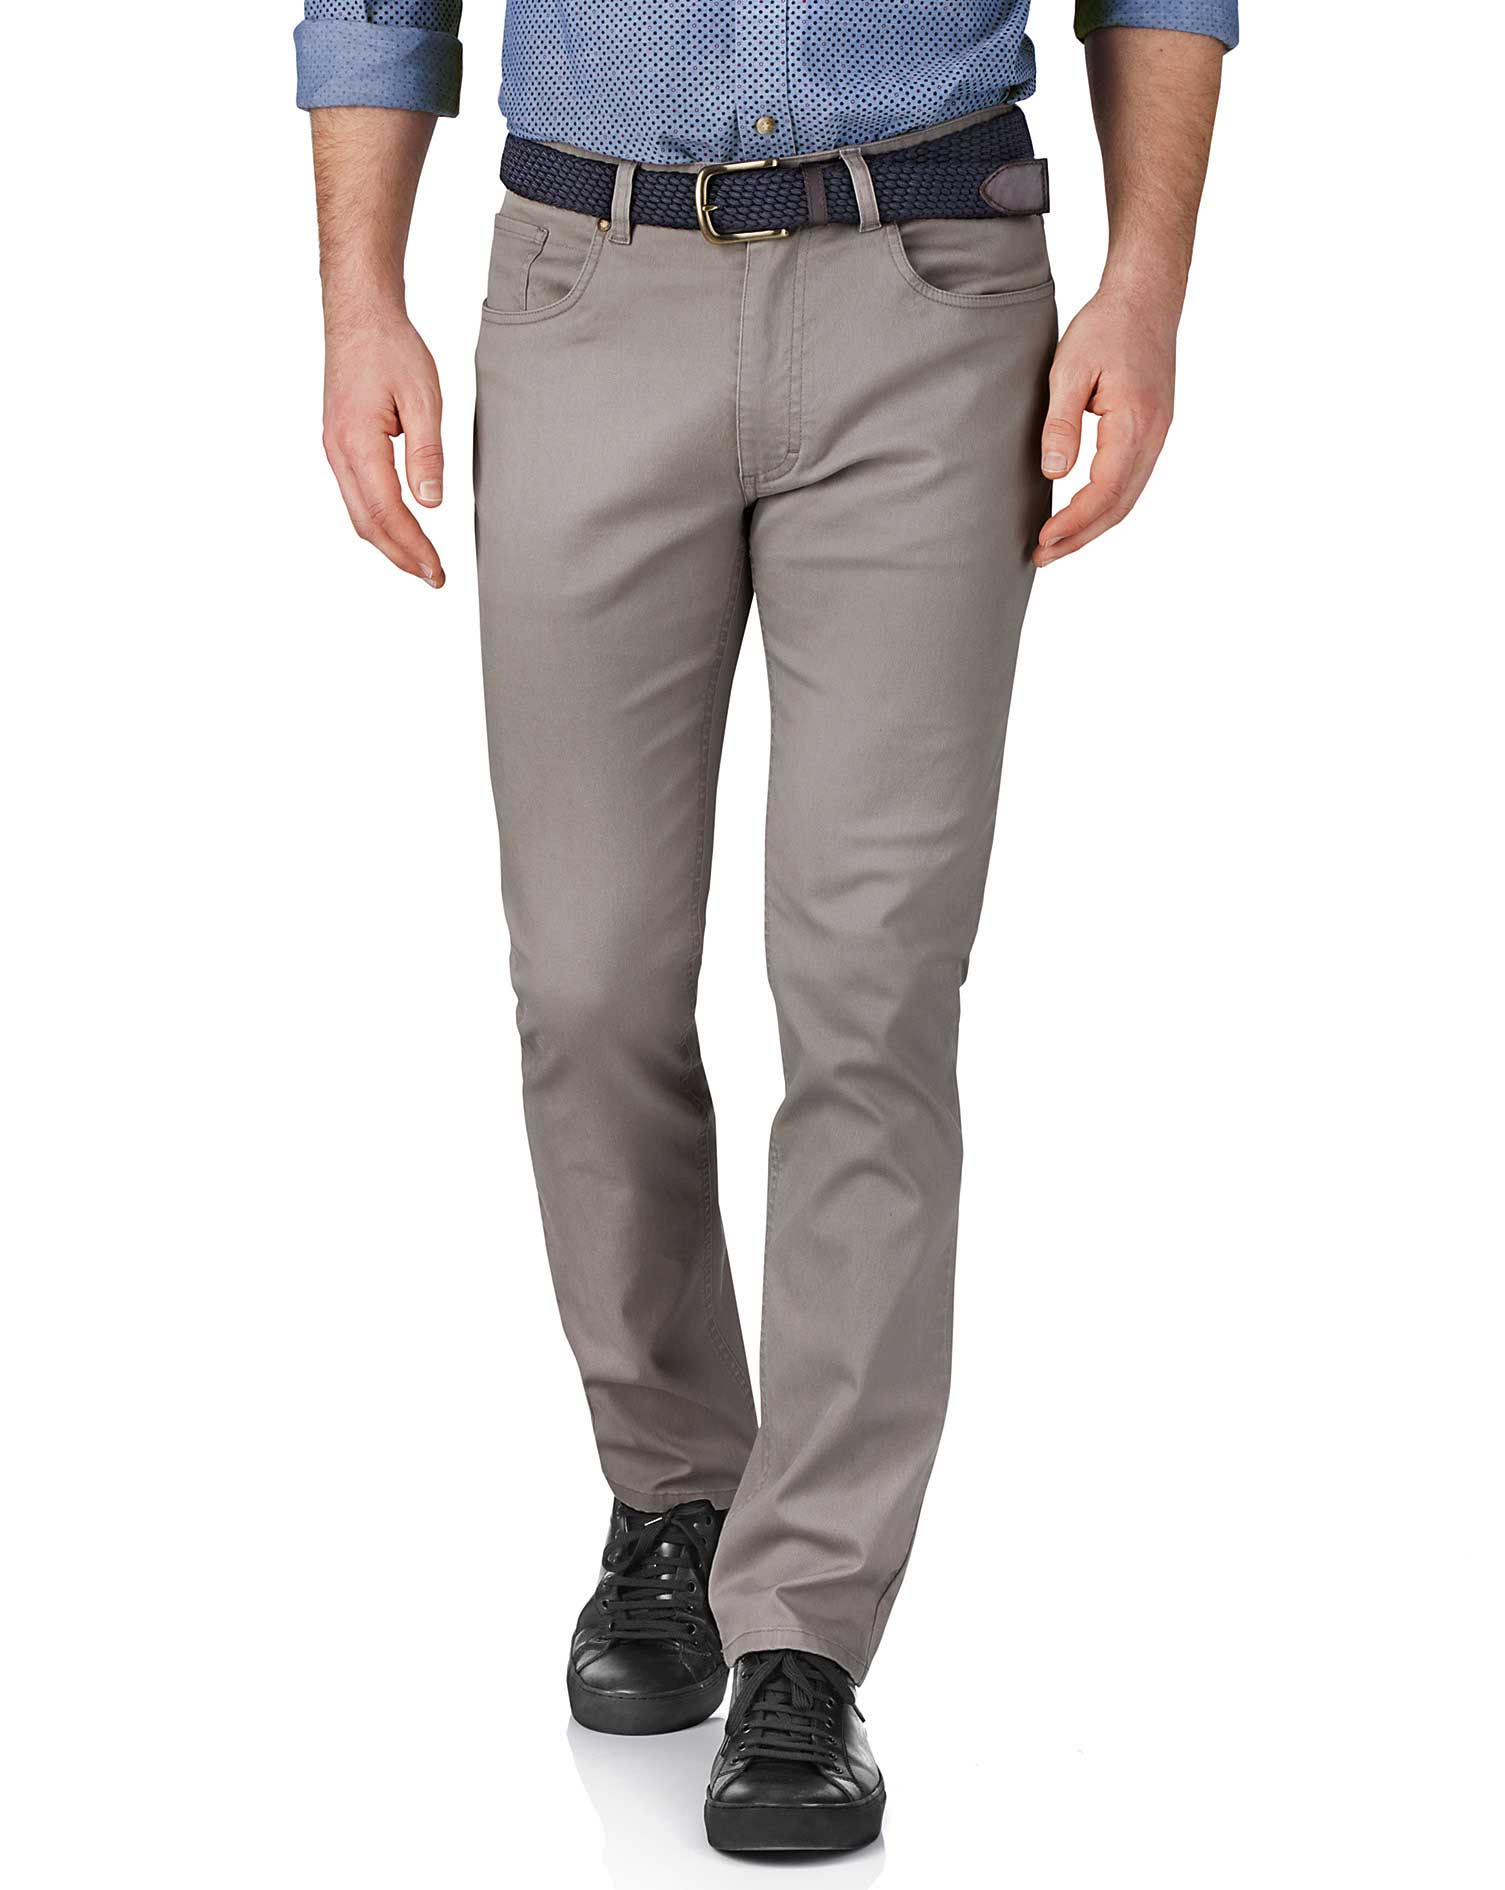 Silver Slim Fit Stretch Pique 5 Pocket Trousers Size W40 L32 by Charles Tyrwhitt